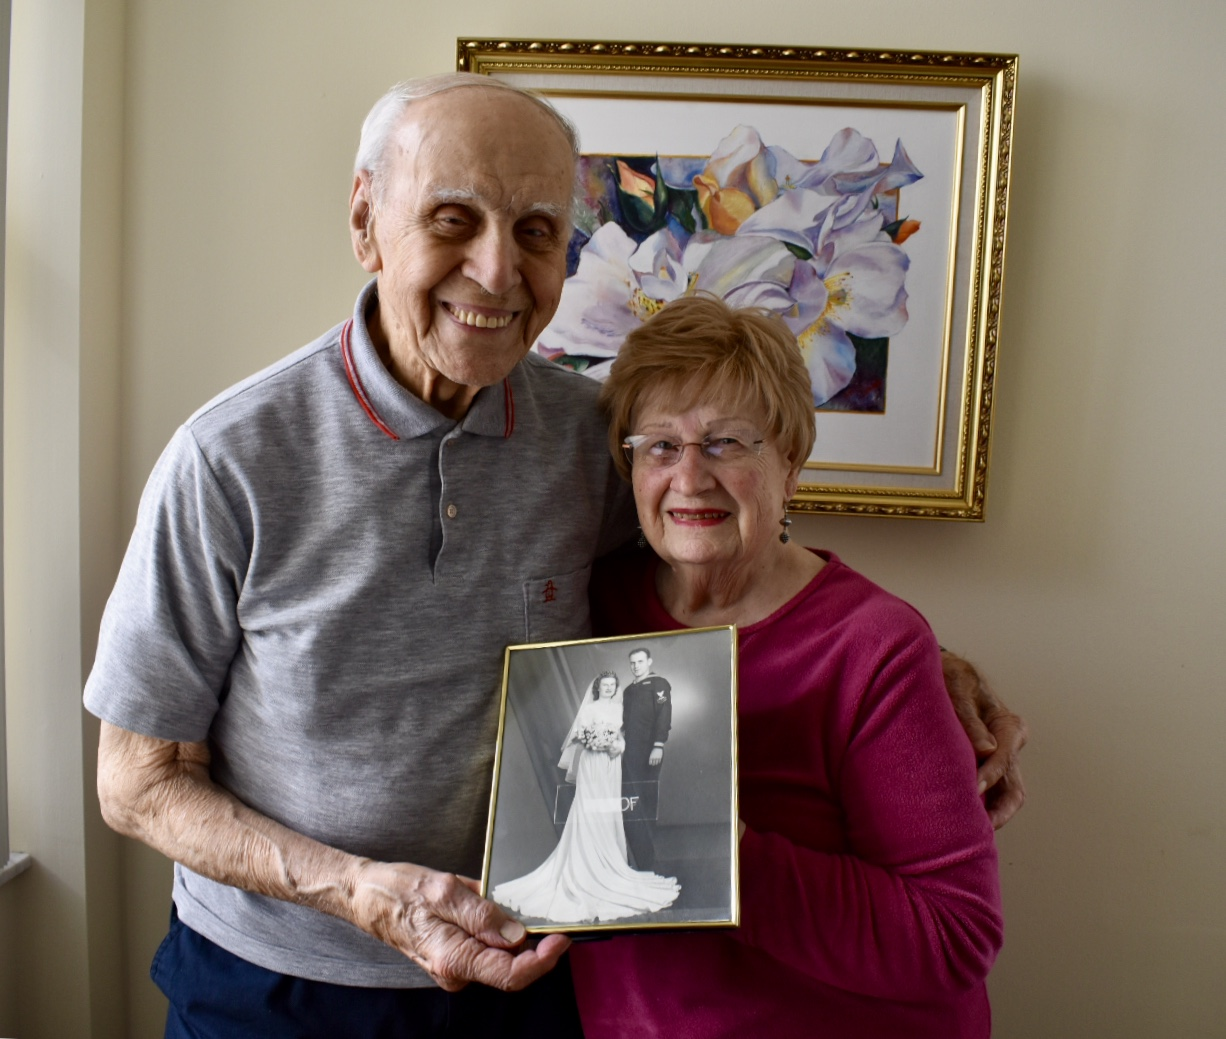 An older man and woman holding a black and white photo of their wedding day, standing in front of a flower painting.